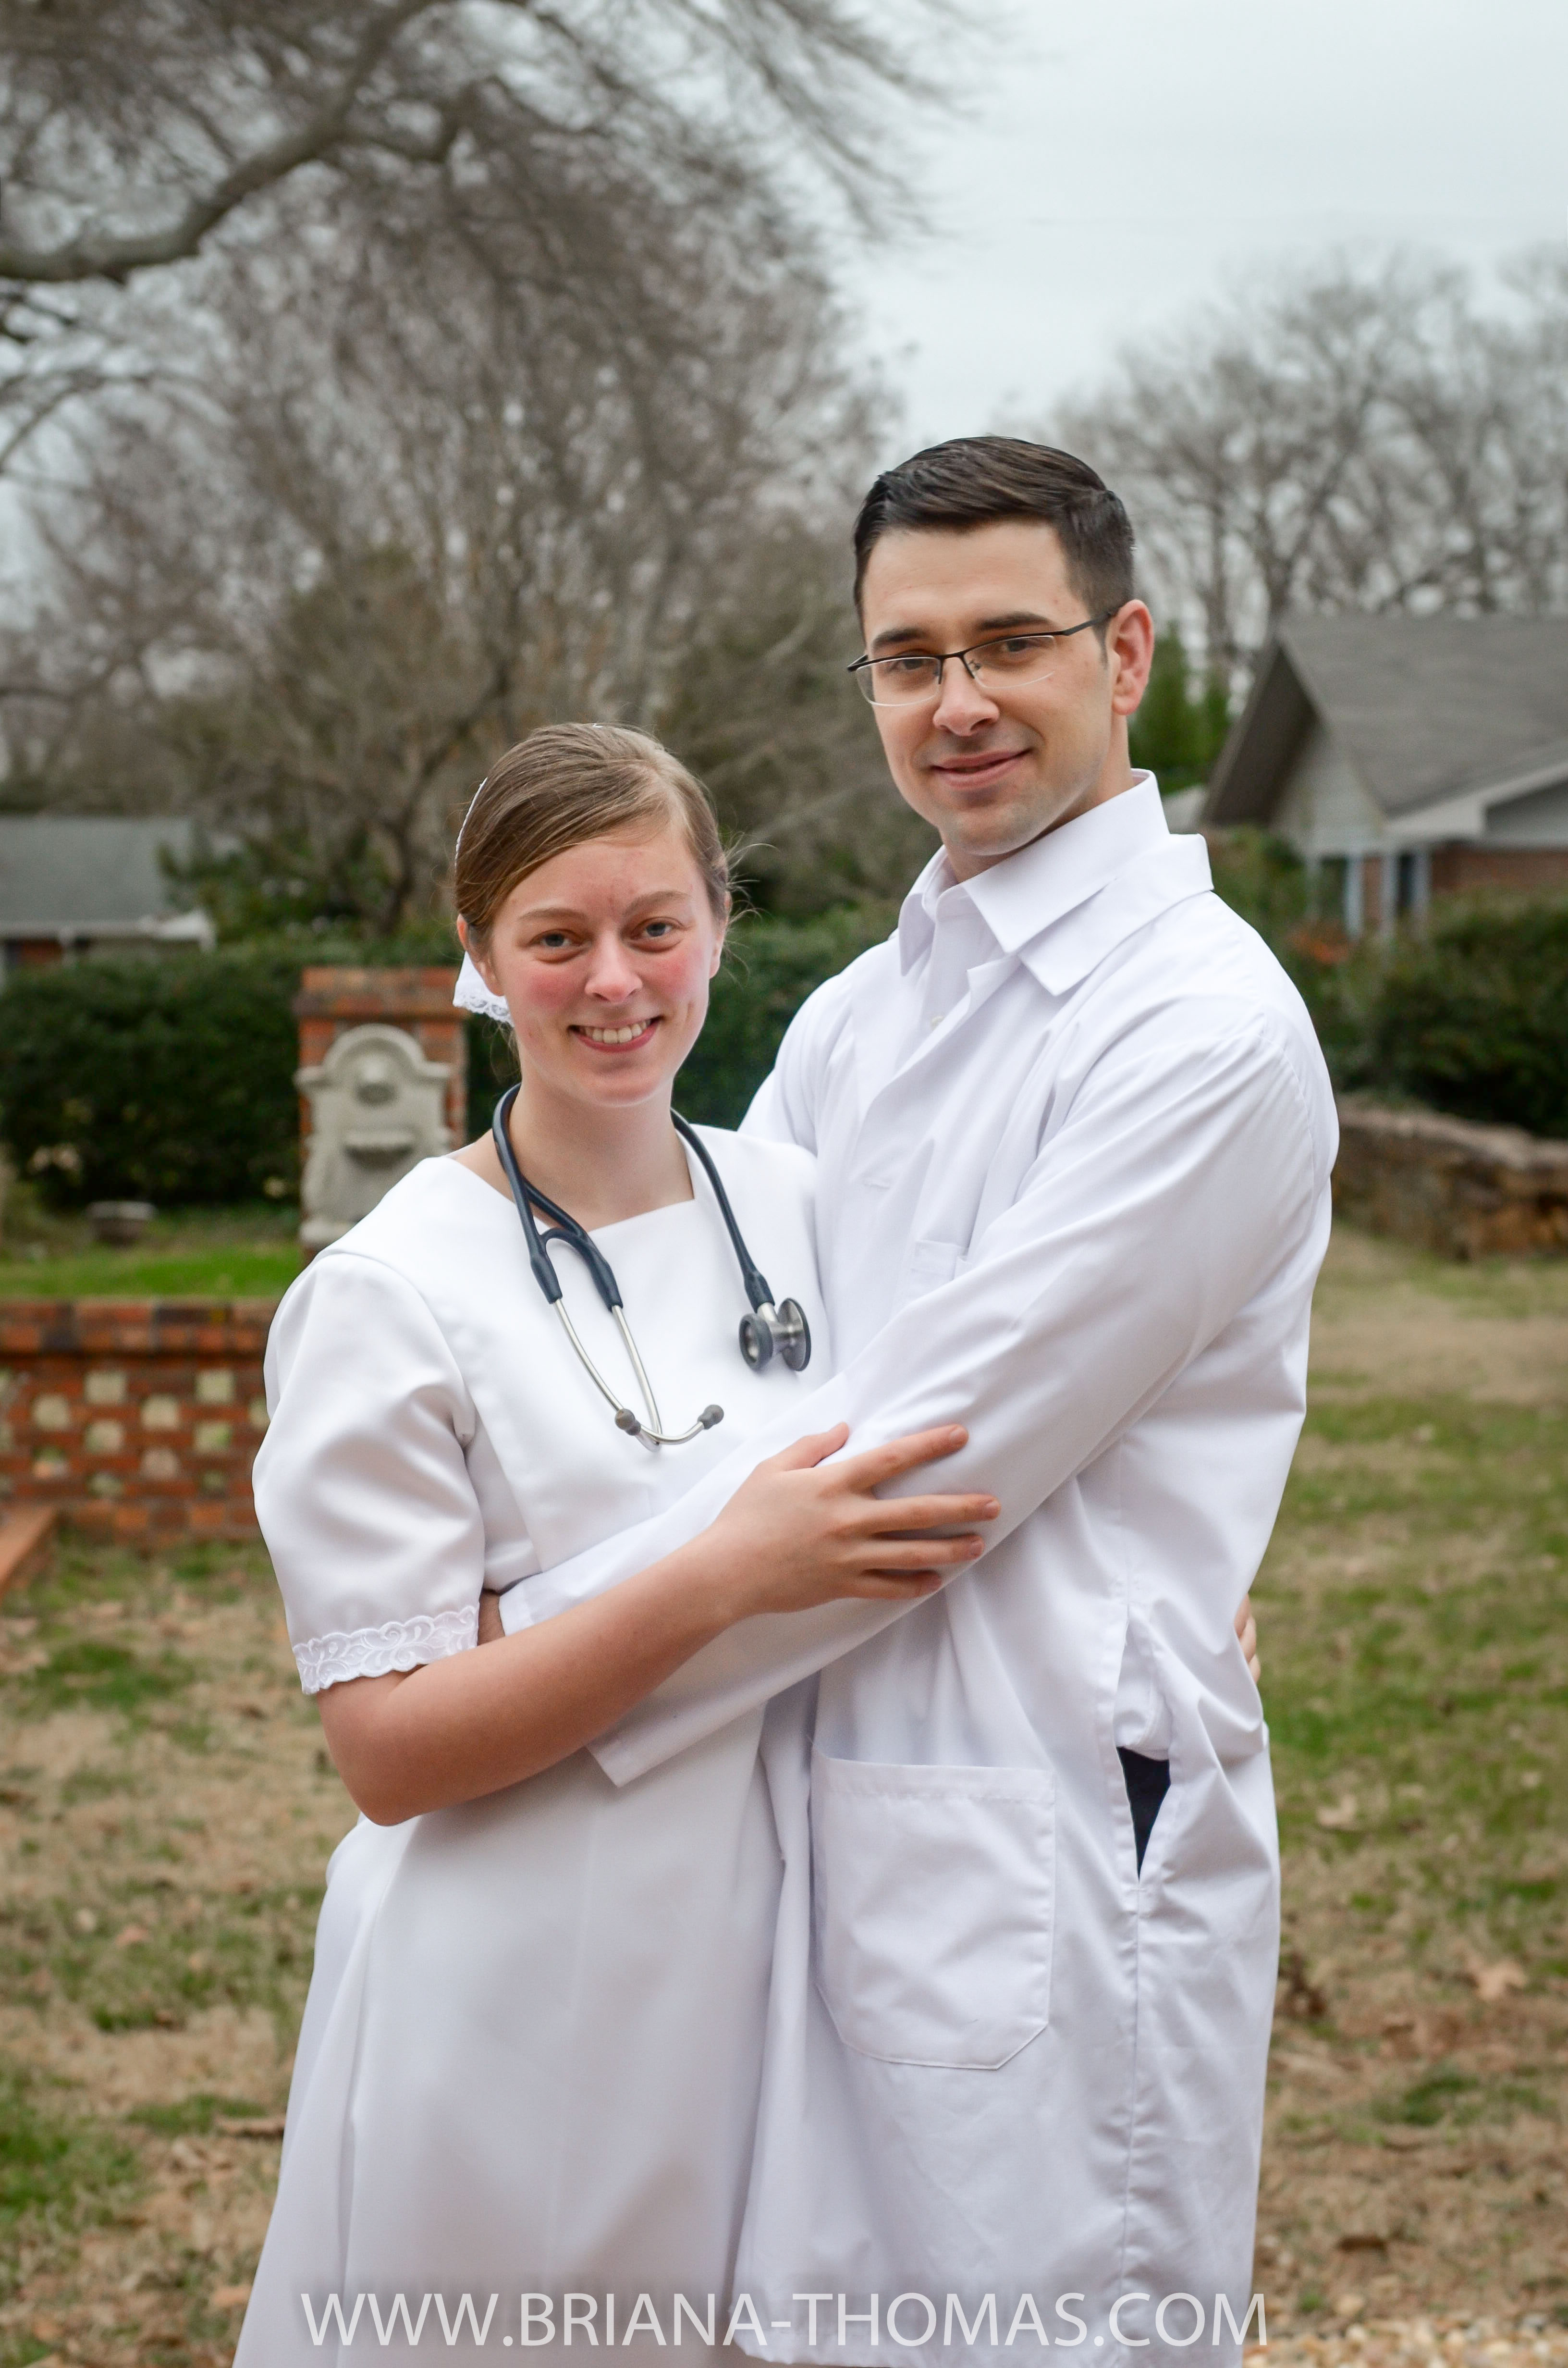 Ryan Burkholder, MD, and Briana Thomas, healthy food blogger/author, were joined in marriage in February 2018. Here are some pictures from our wedding!